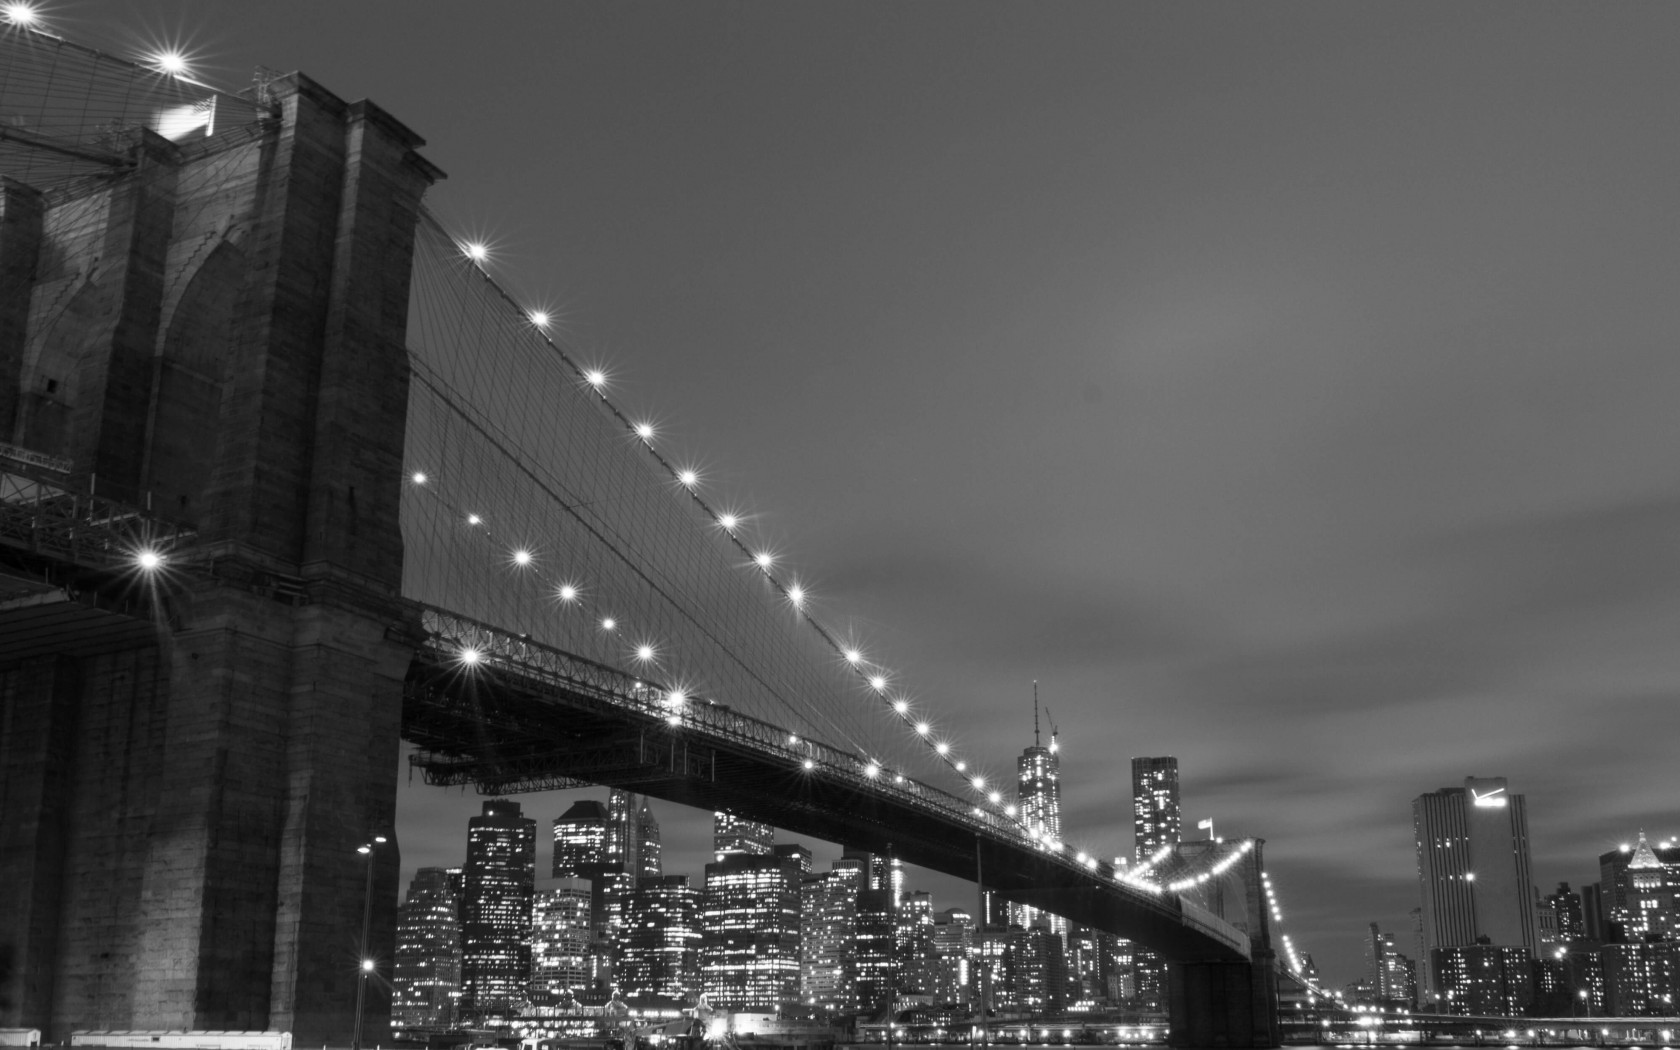 Brooklyn Bridge, New York City in Black & White Wallpaper for Desktop 1680x1050